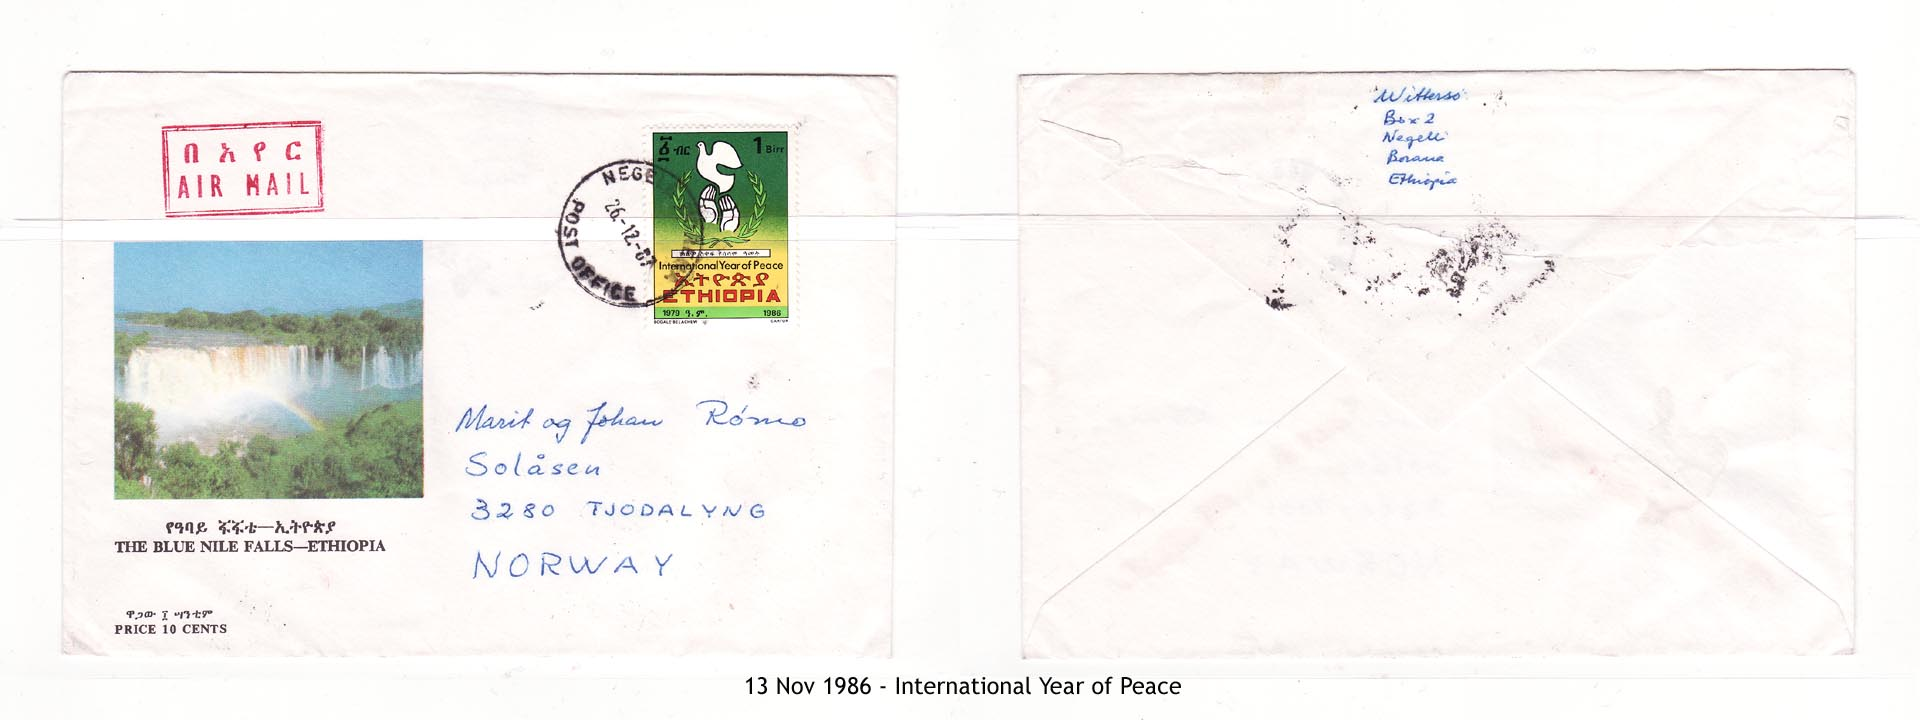 19861113 - International Year of Peace